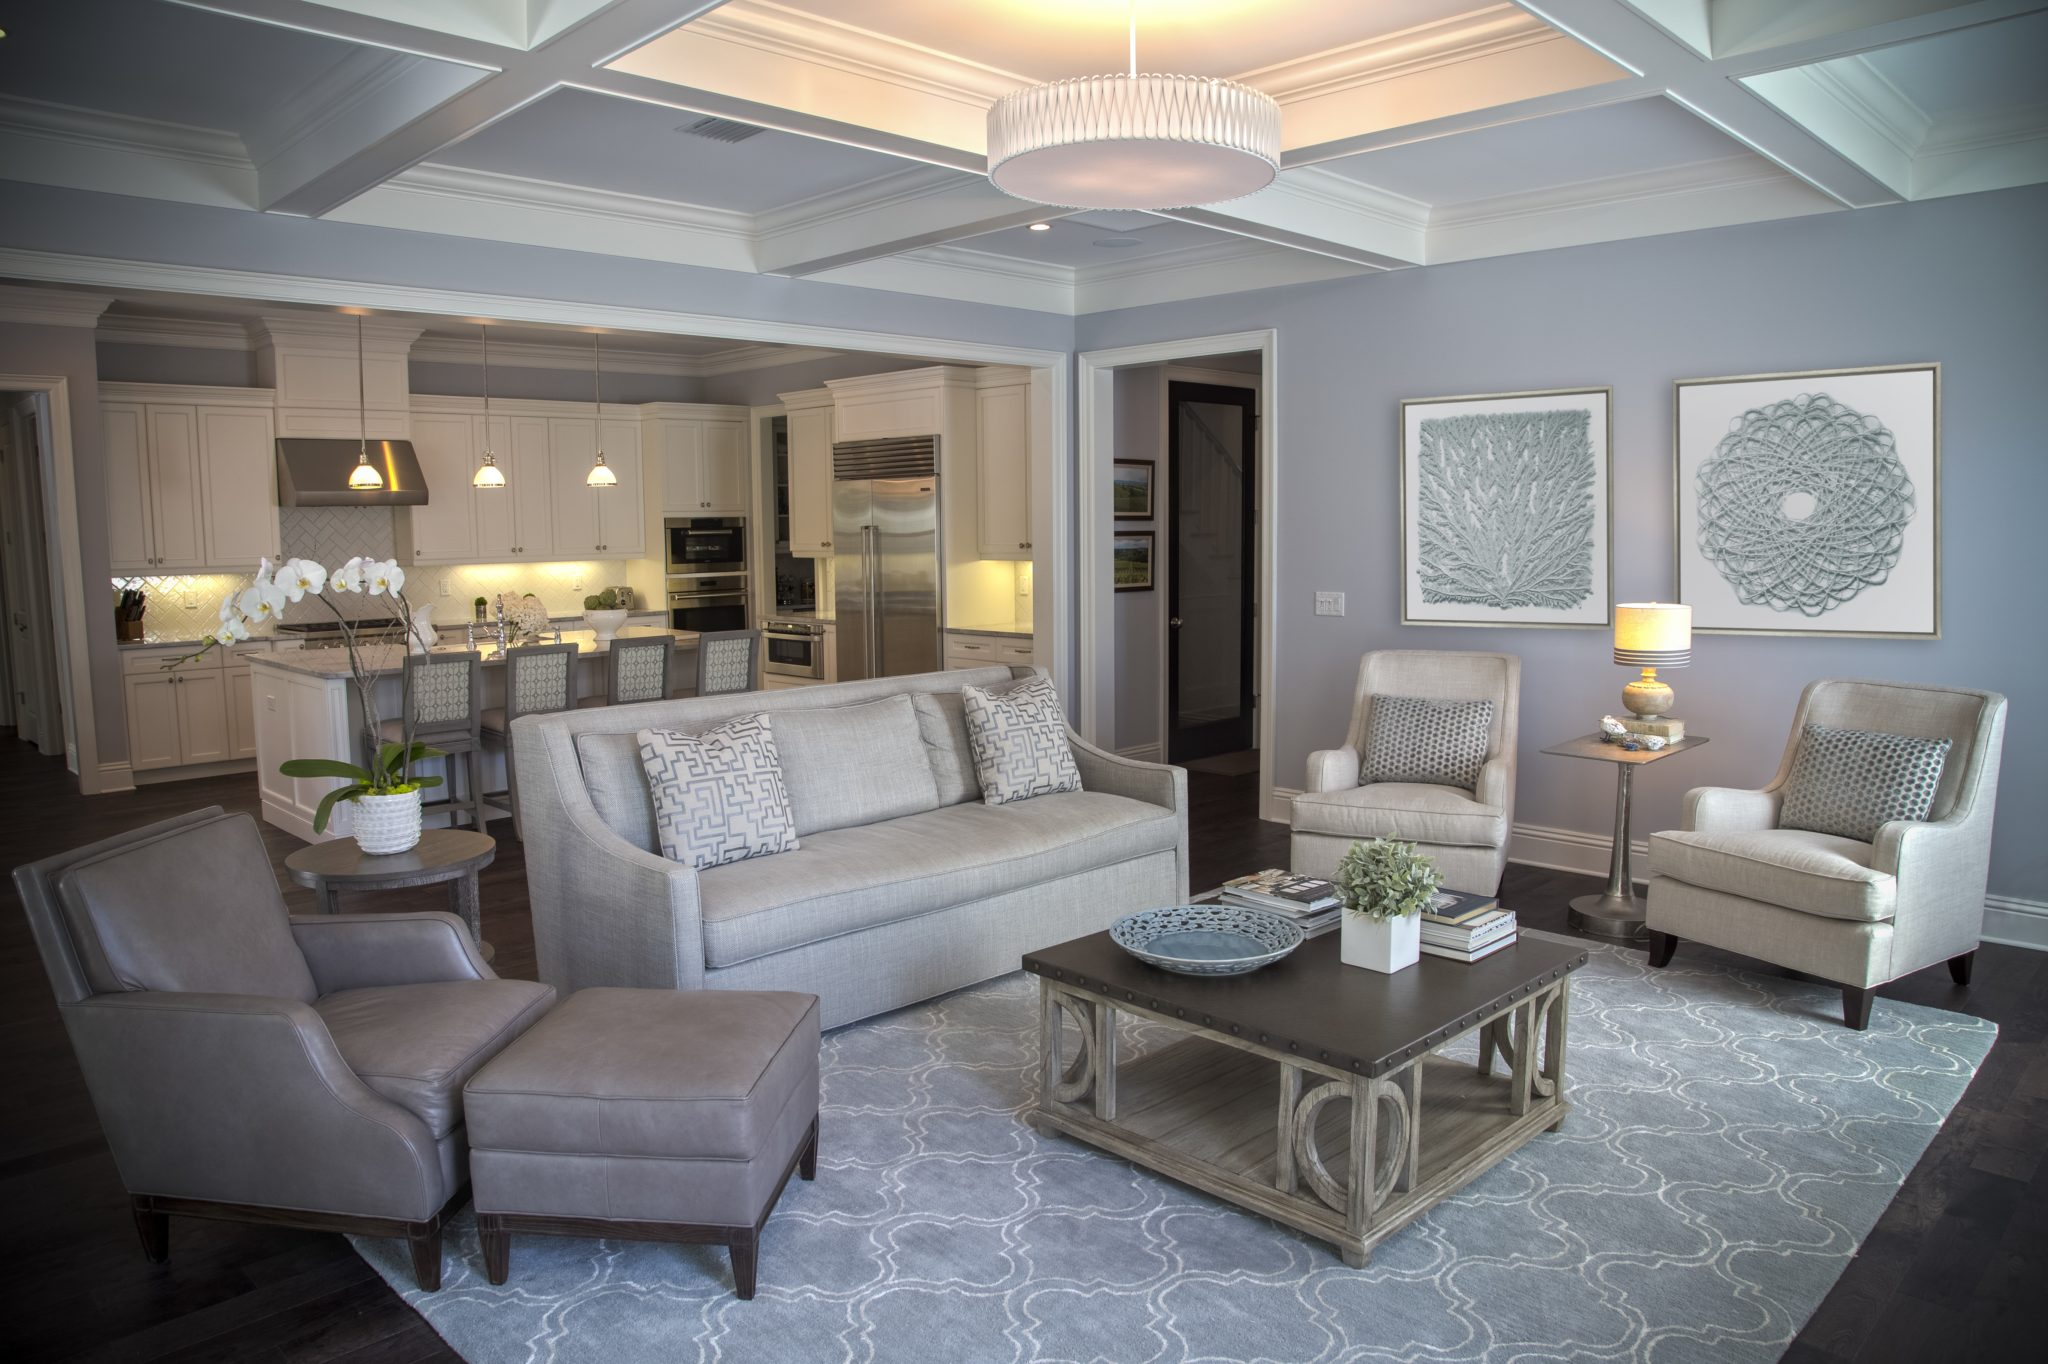 Parkland residence featuring coffered ceiling detail by Kari Wilbanks Interior Design